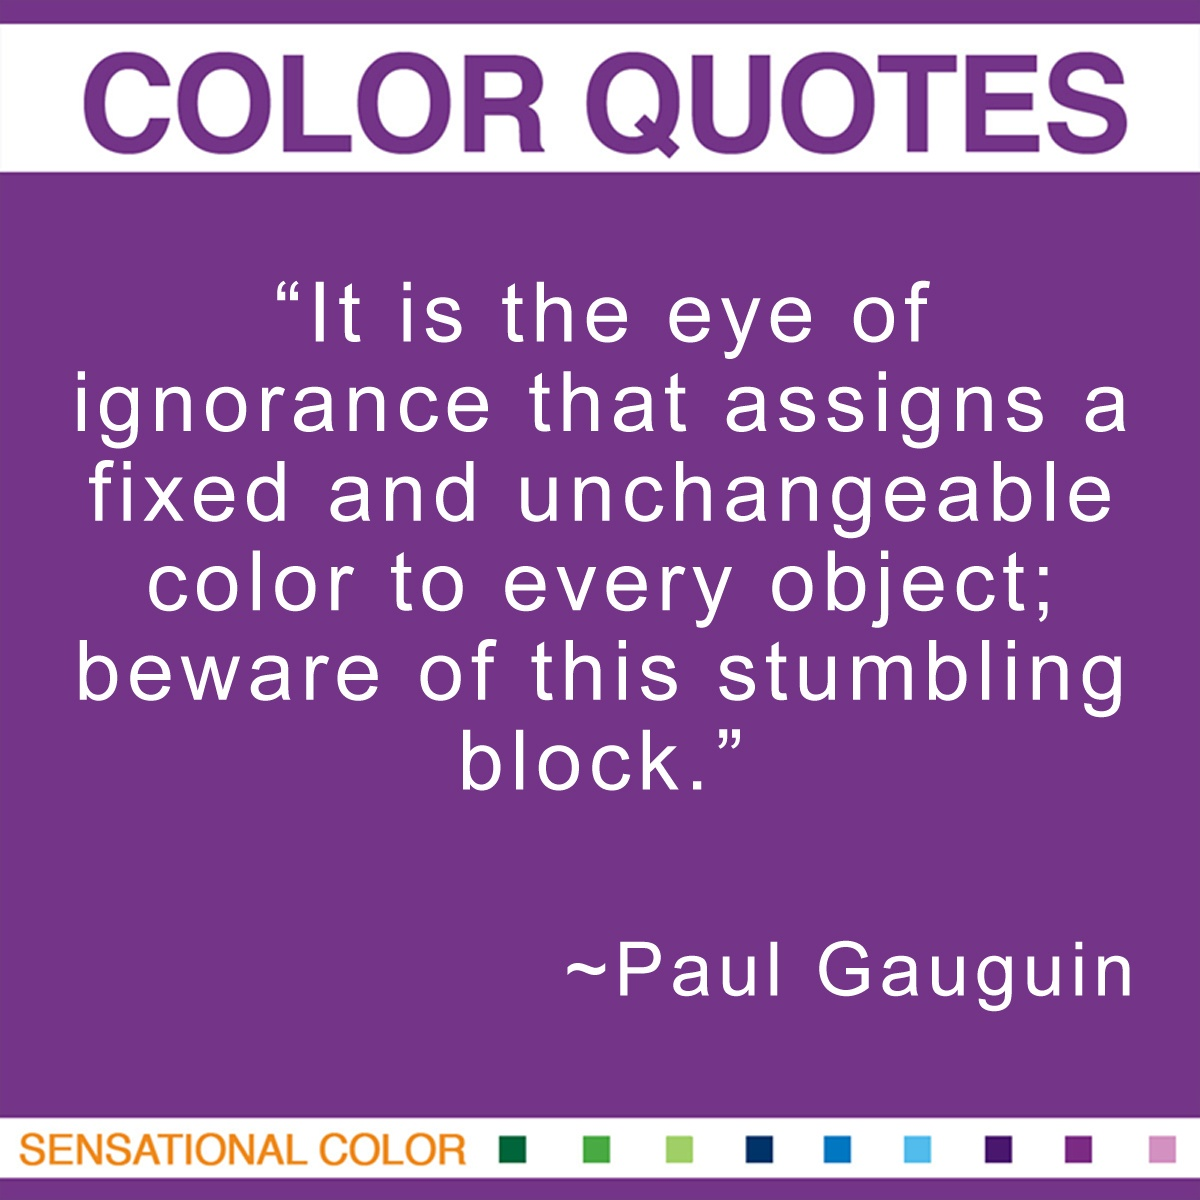 """It is the eye of ignorance that assigns a fixed and unchangeable color to every object; beware of this stumbling block."" - Paul Gauguin"